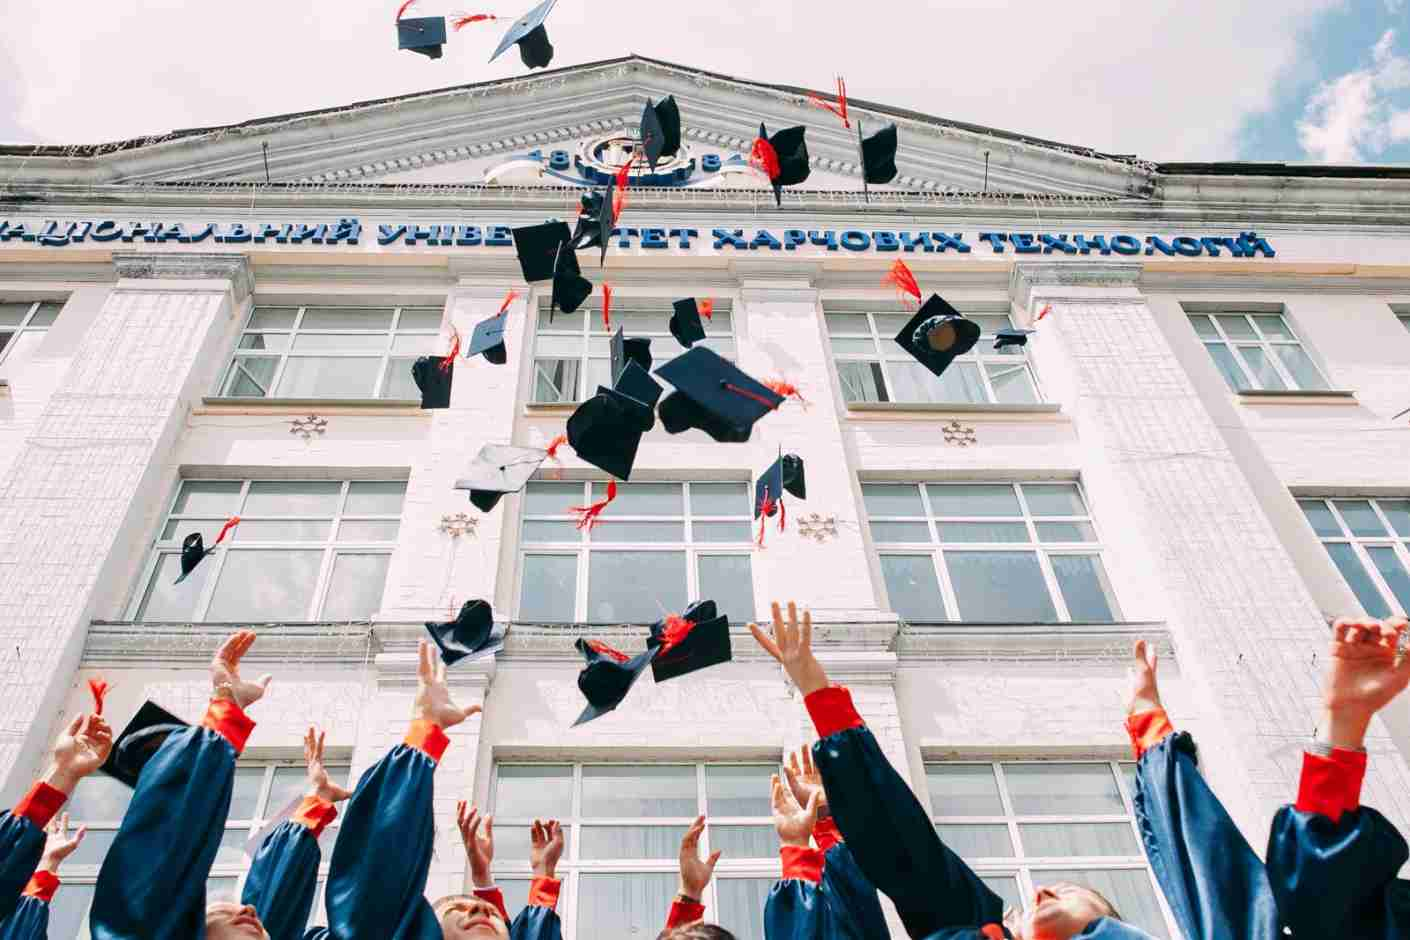 Working in higher education administration can lead to domestic and international travel opportunities. (Photo by Vasily Koloda via Unsplash)